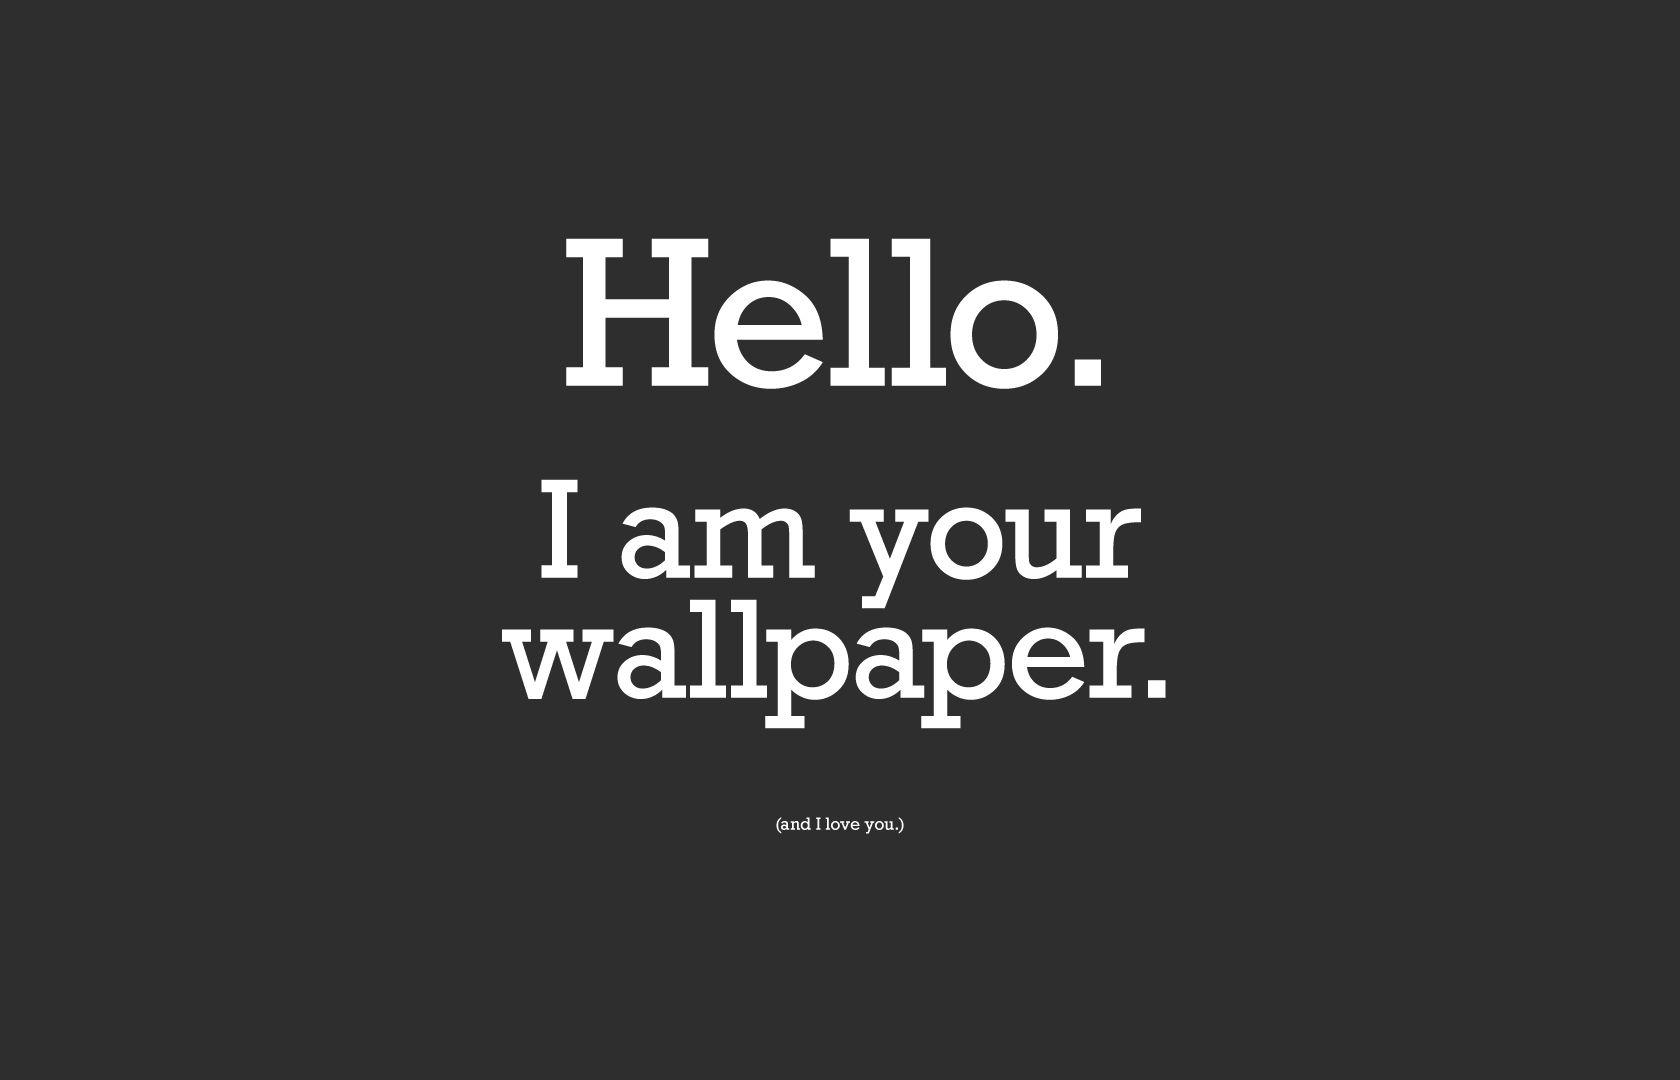 Wallpapers For > Awesome Wallpapers With Funny Quotes